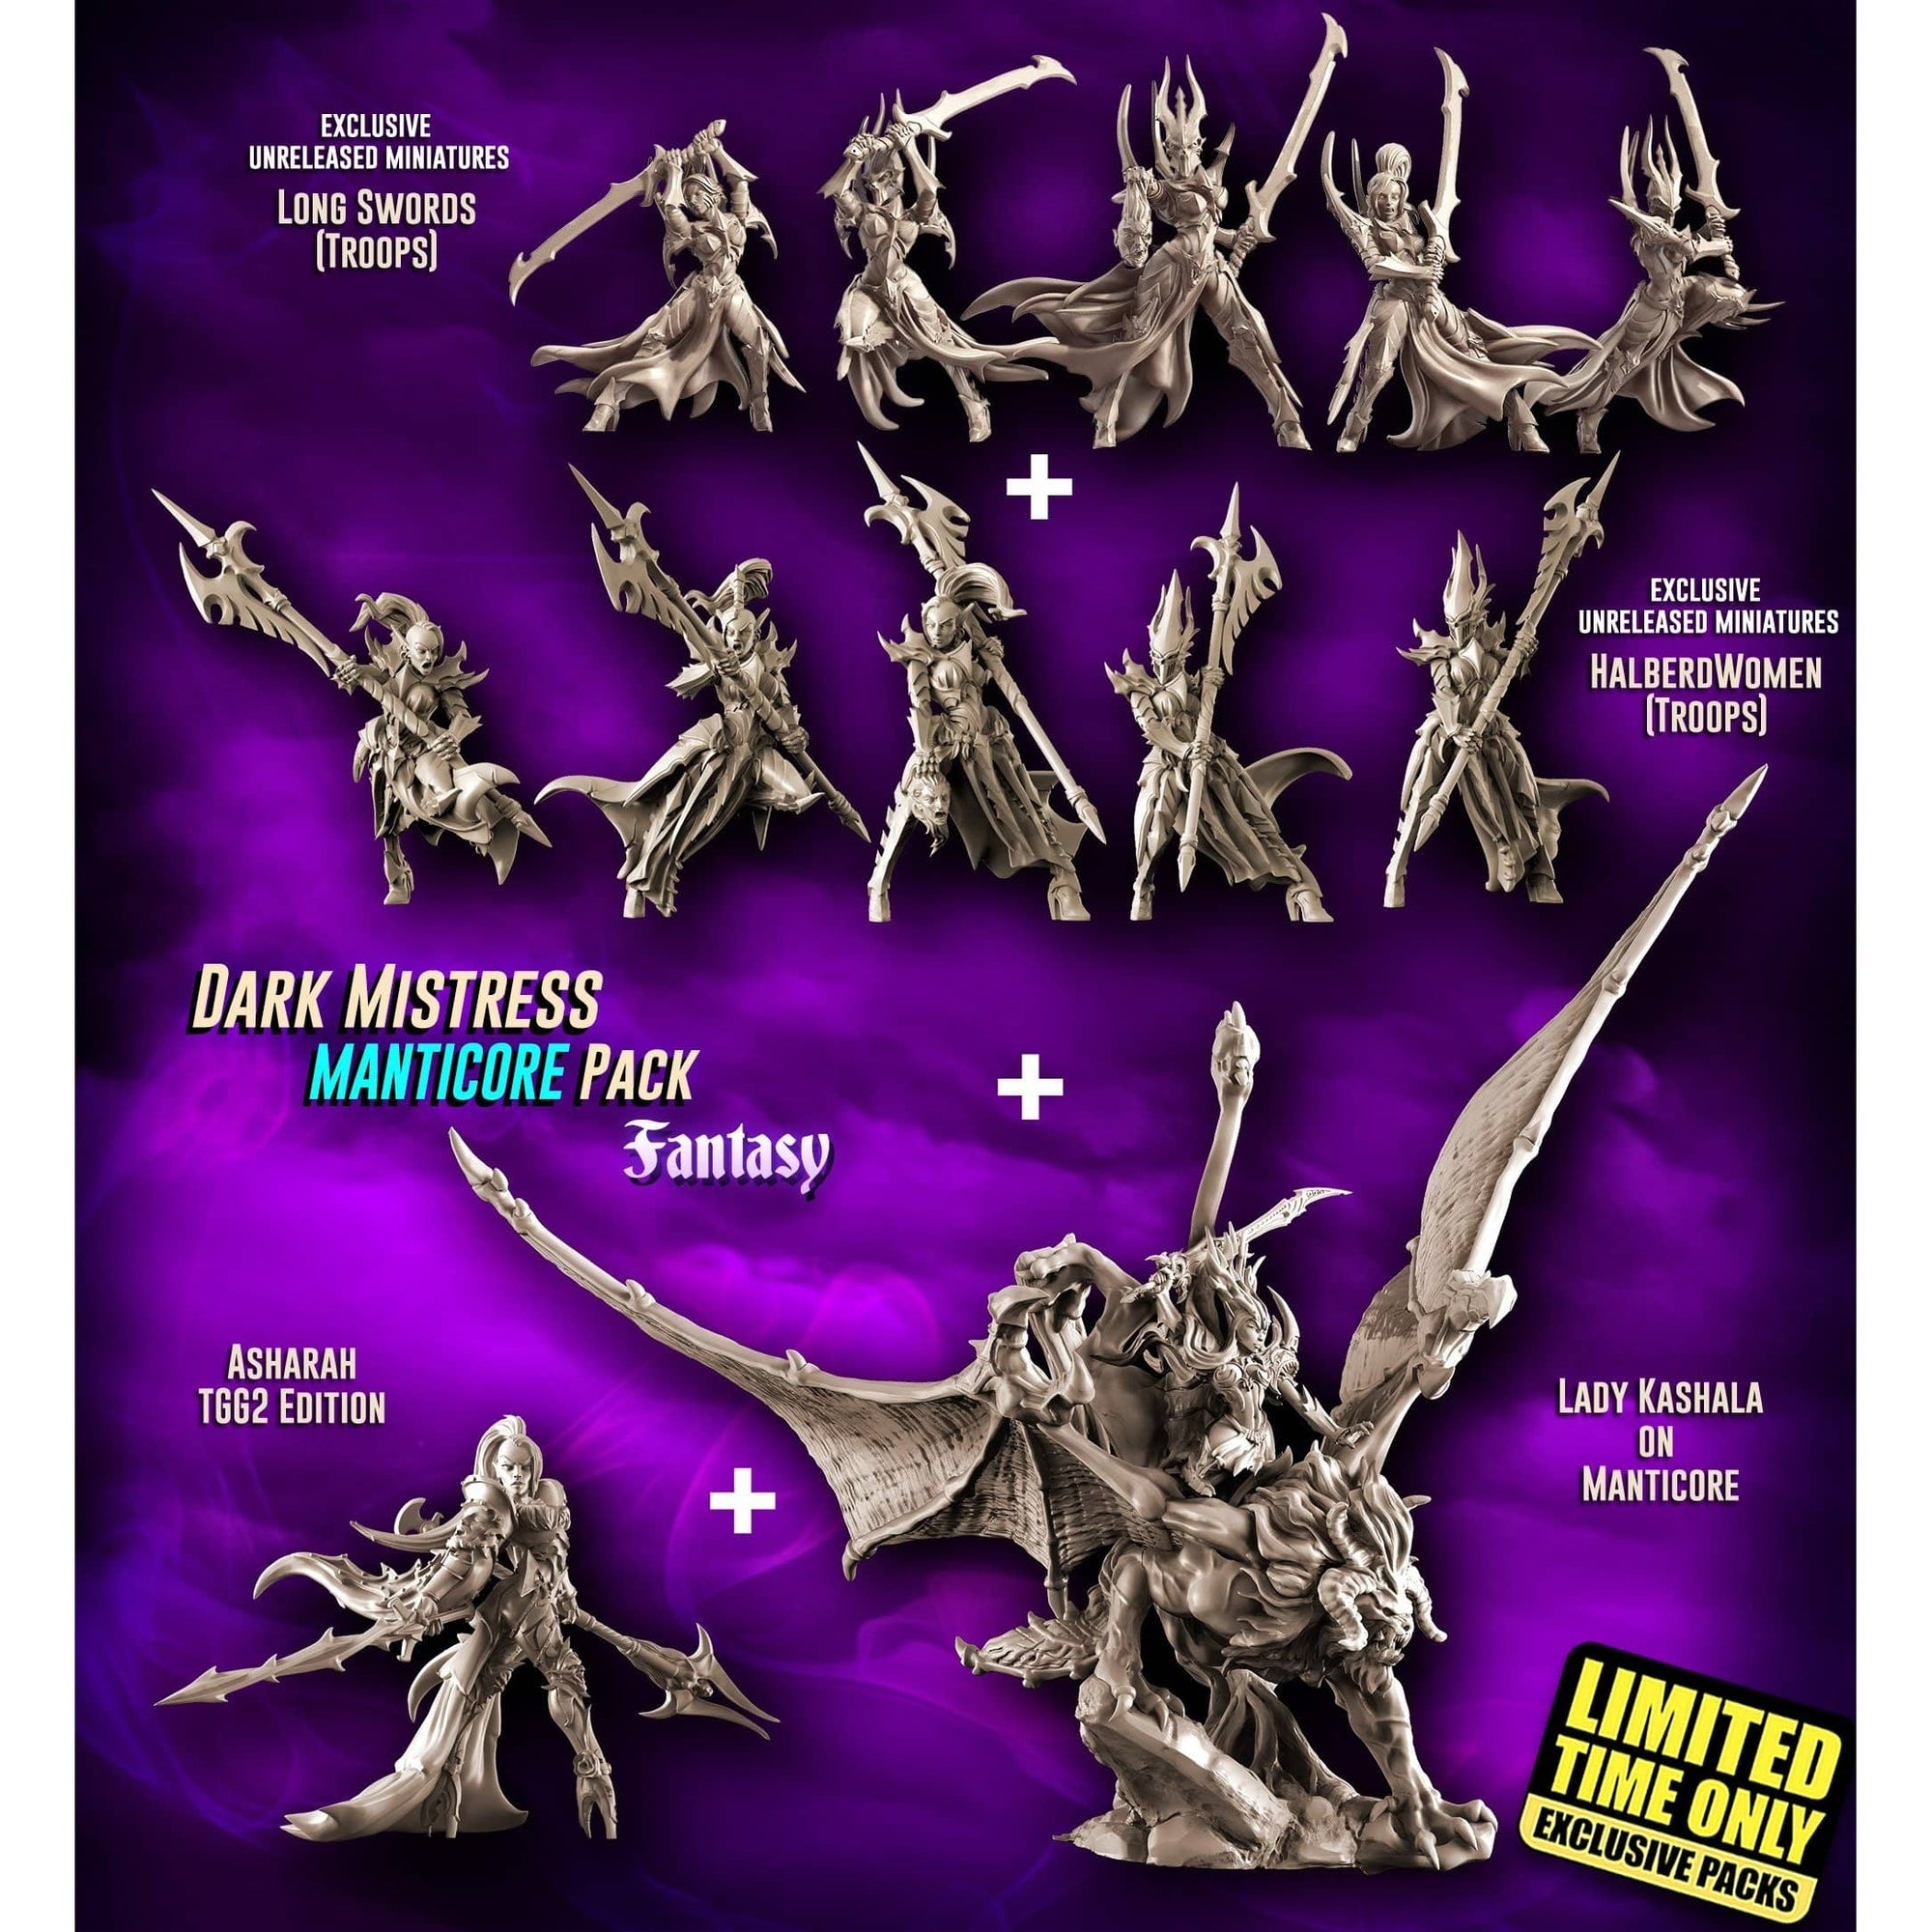 EXCLUSIVE Dark Mistress MANTICORE Pack (DE - F)